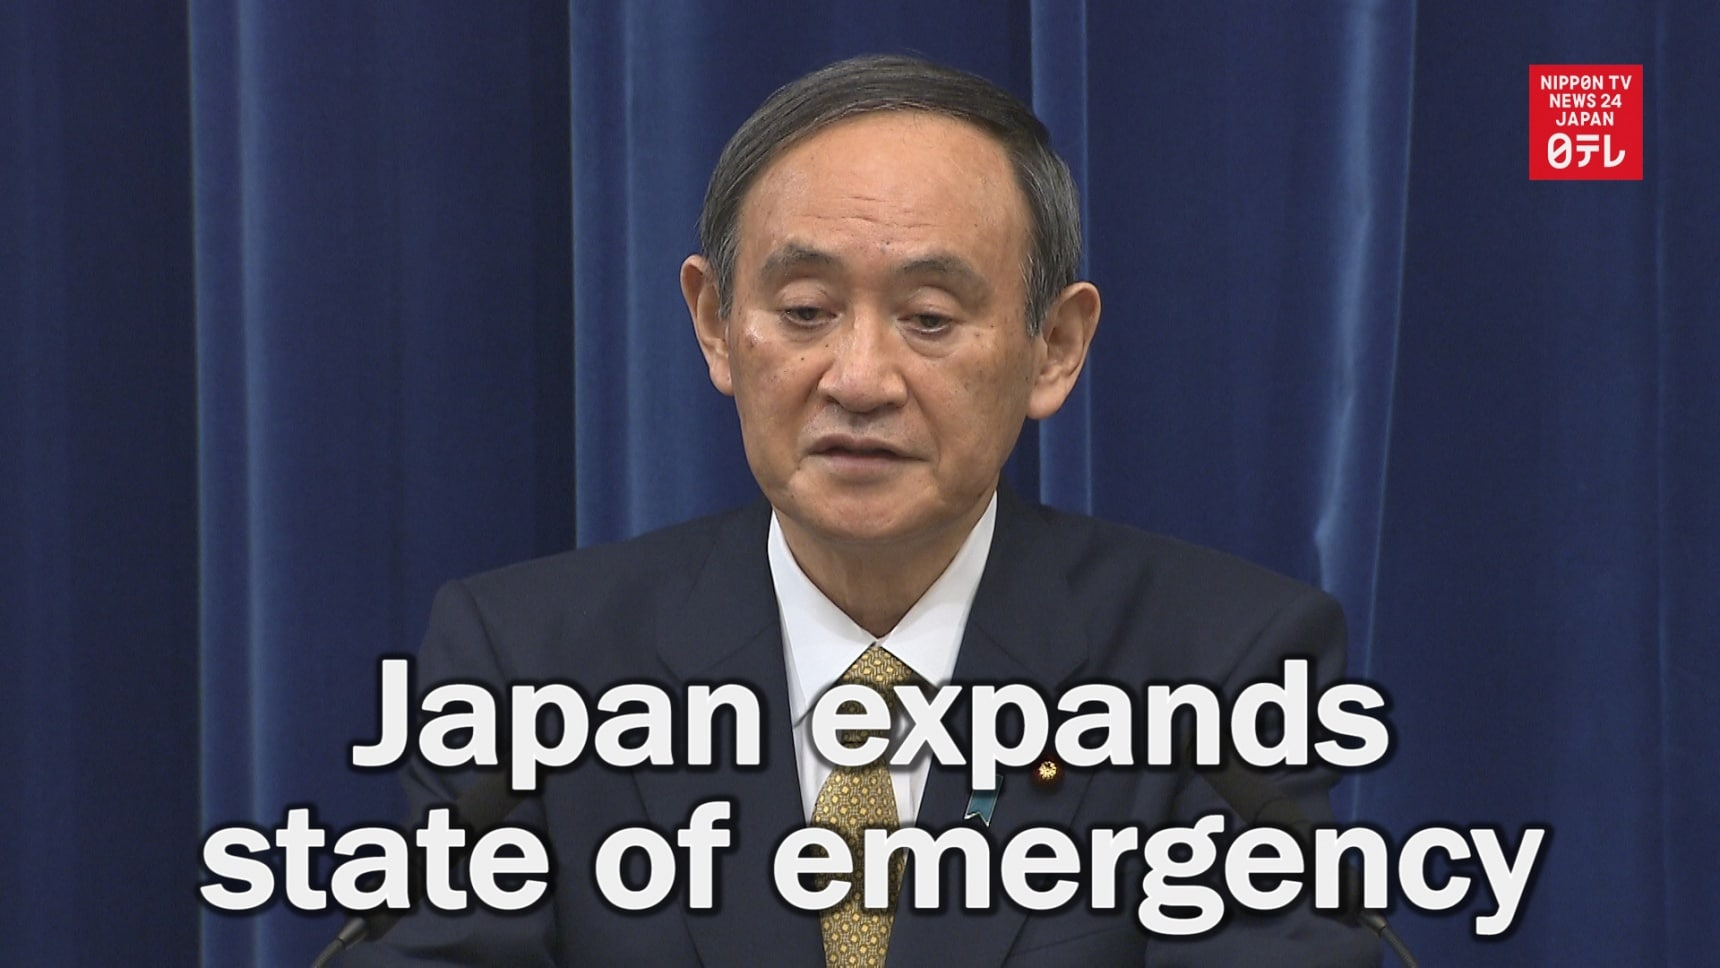 Japan Expands State of Emergency